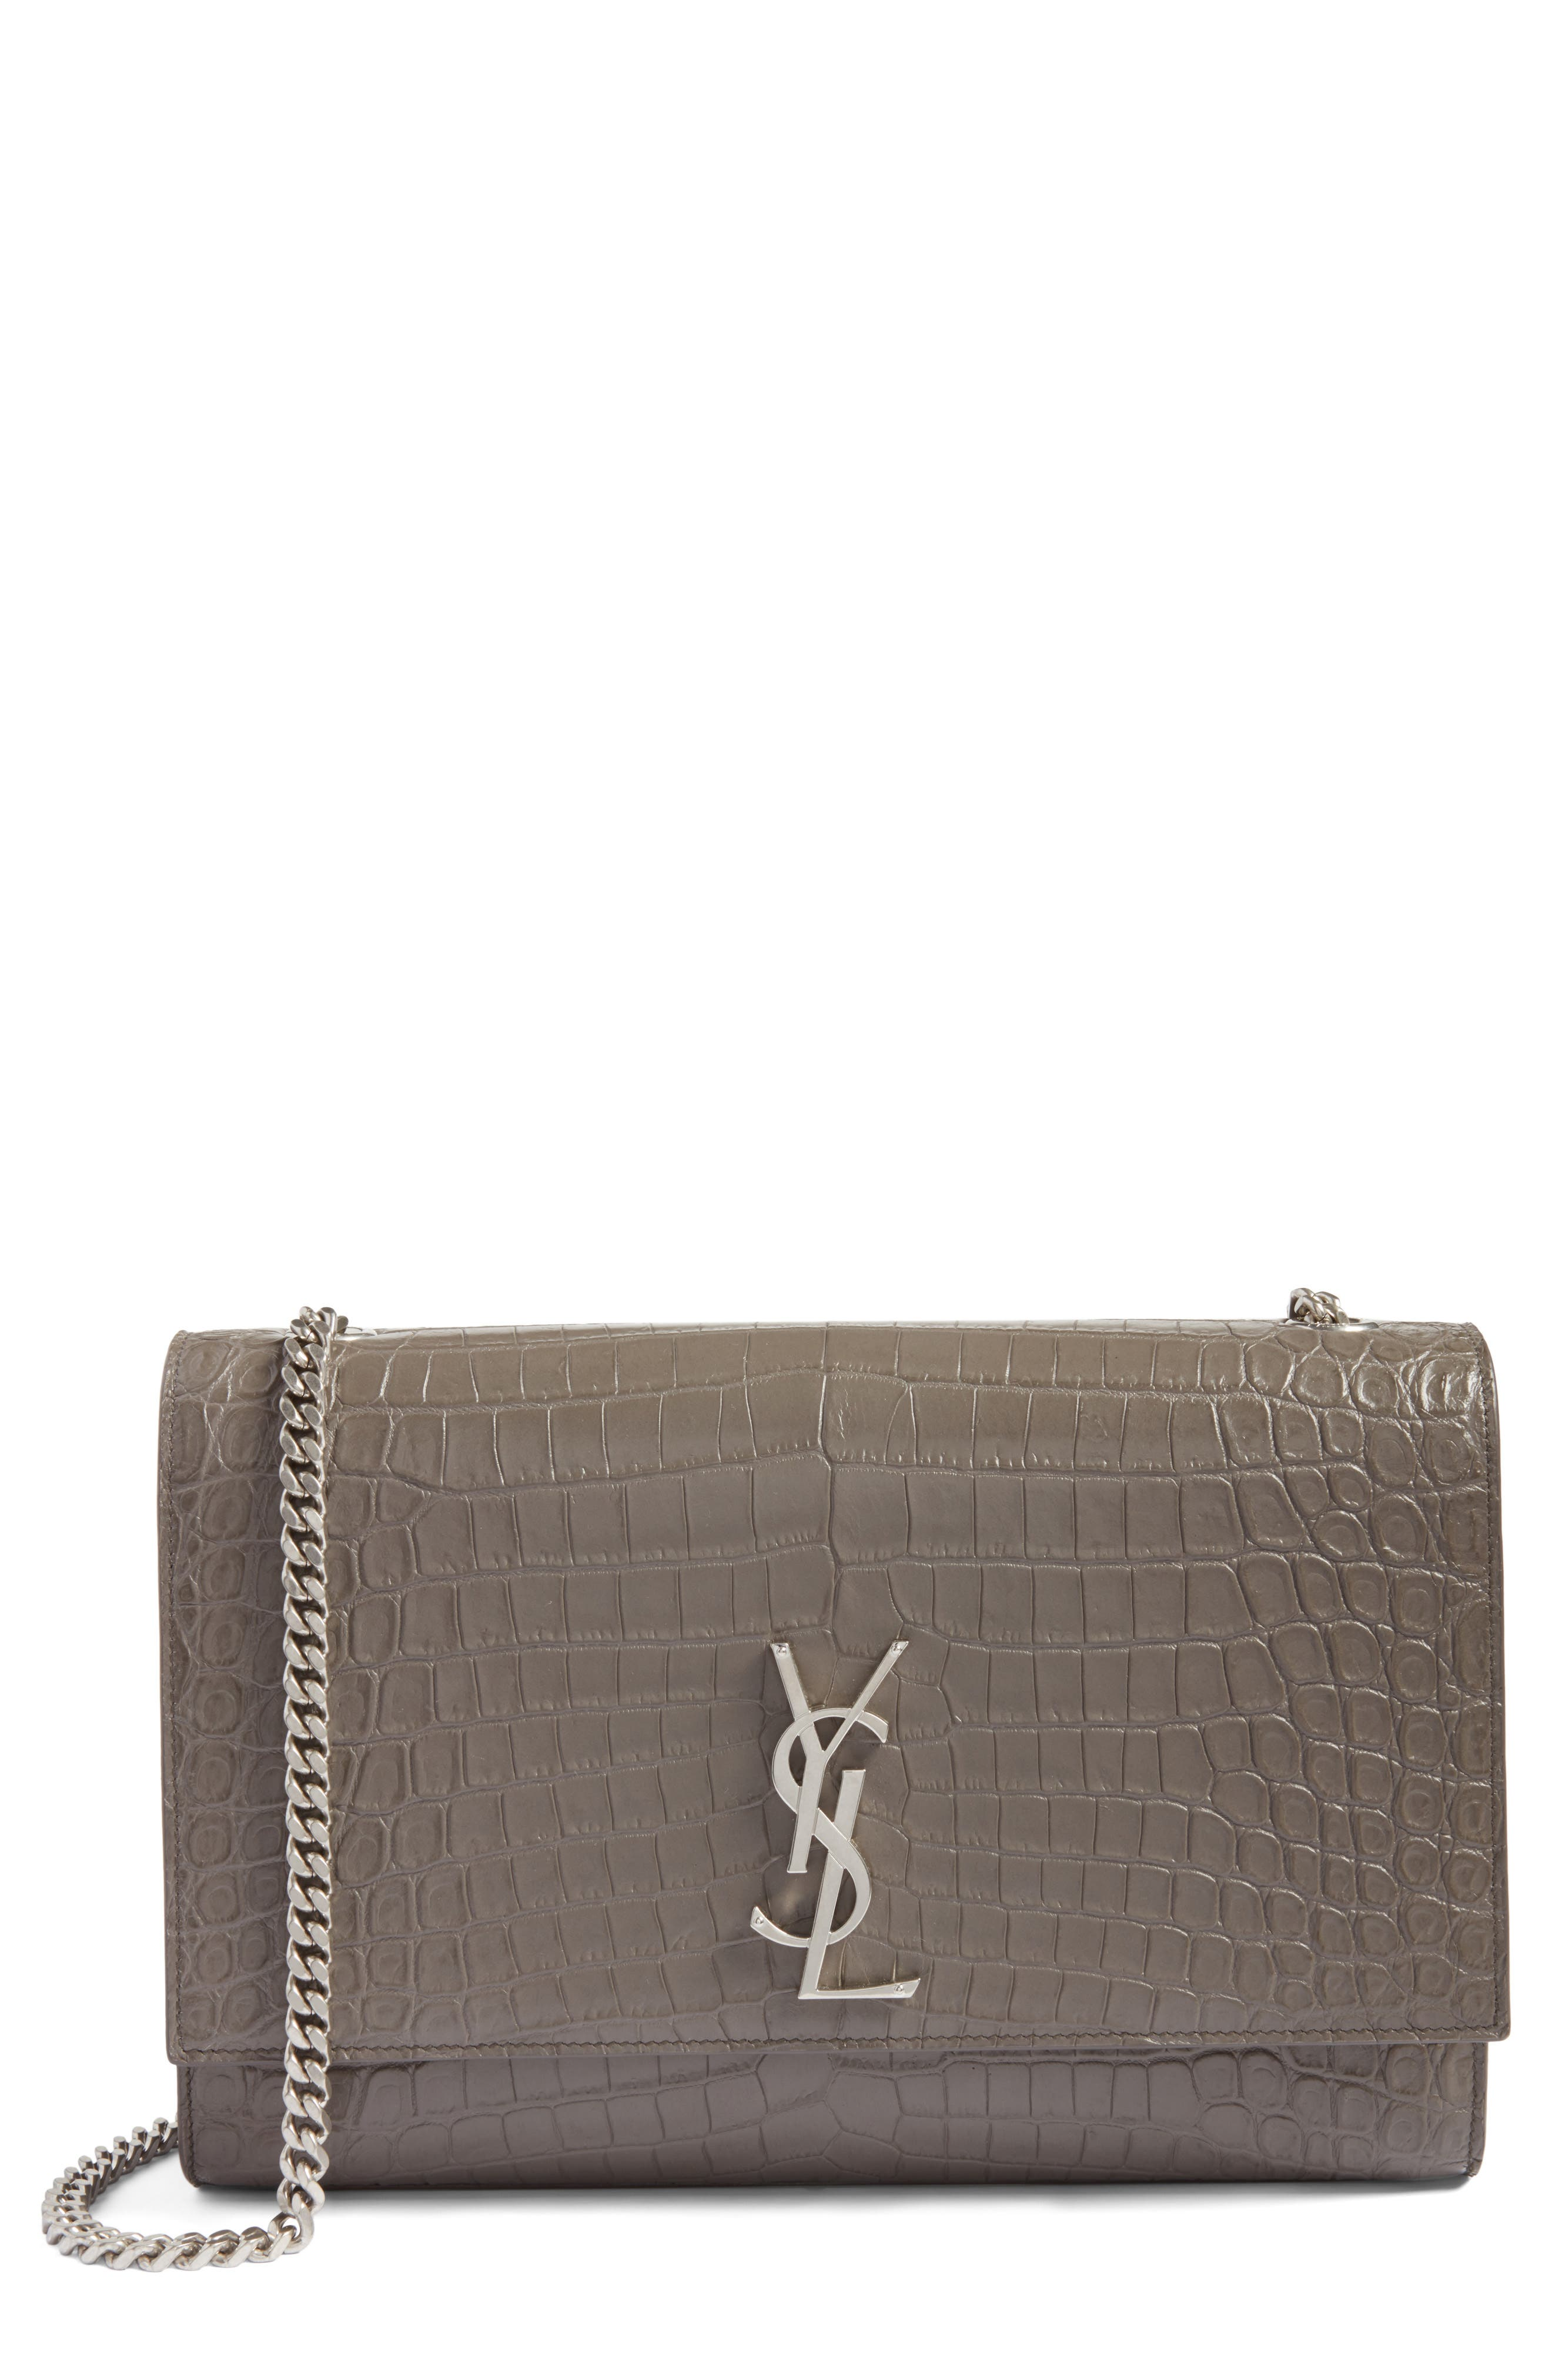 Saint Laurent Large Kate Croc Embossed Calfskin Leather Wallet on a Chain